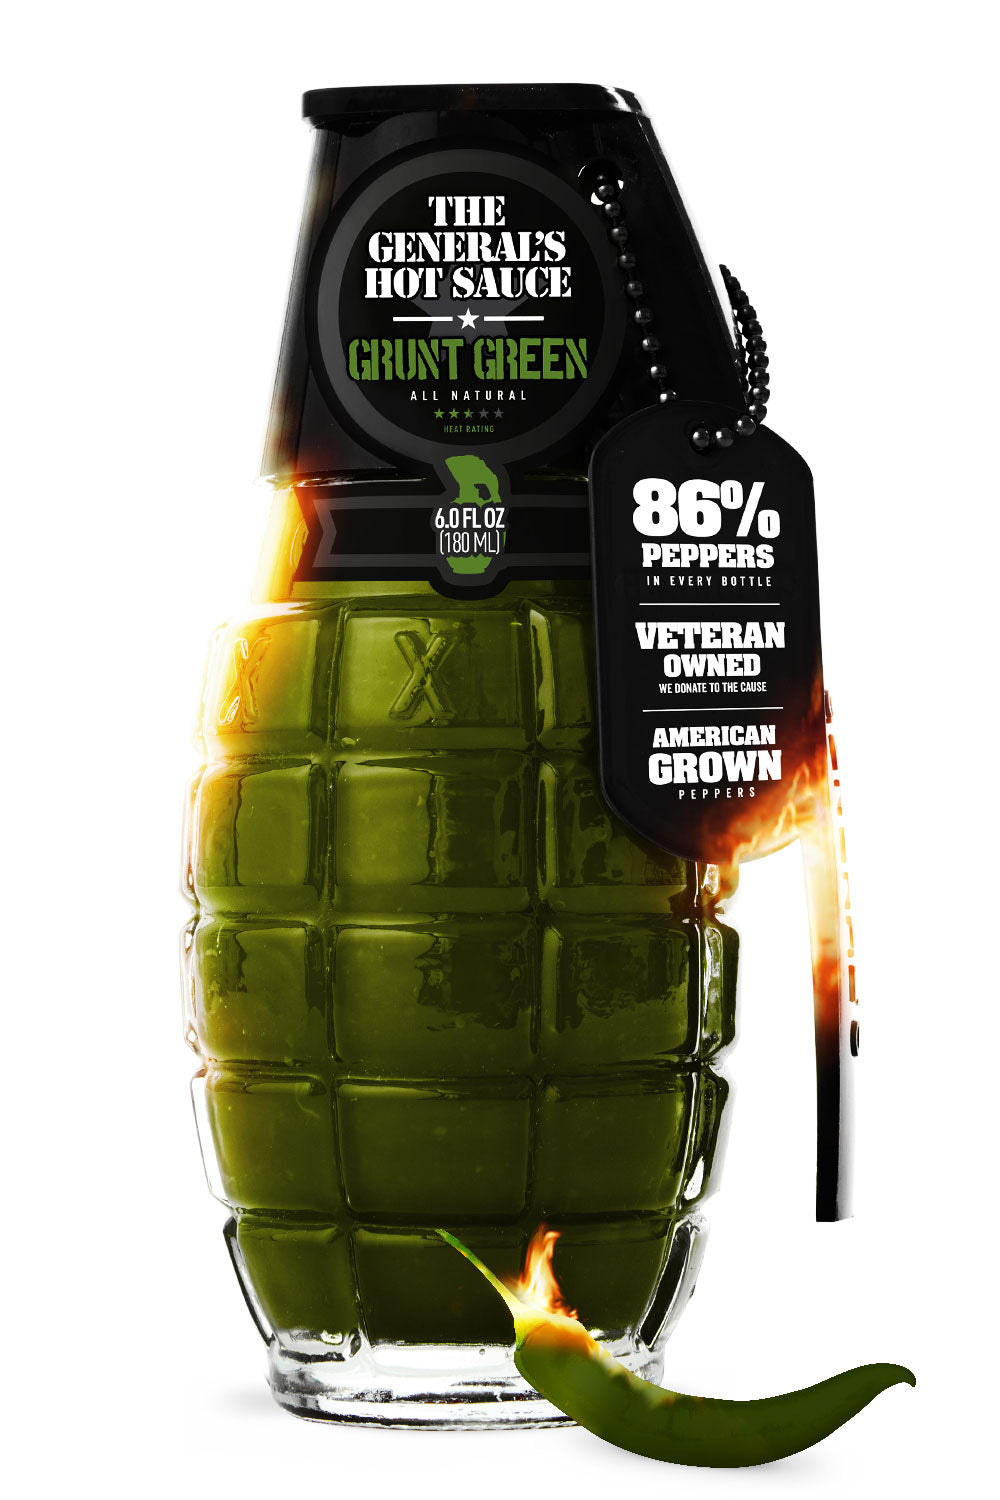 Grunt Green - The General's Hot Sauce